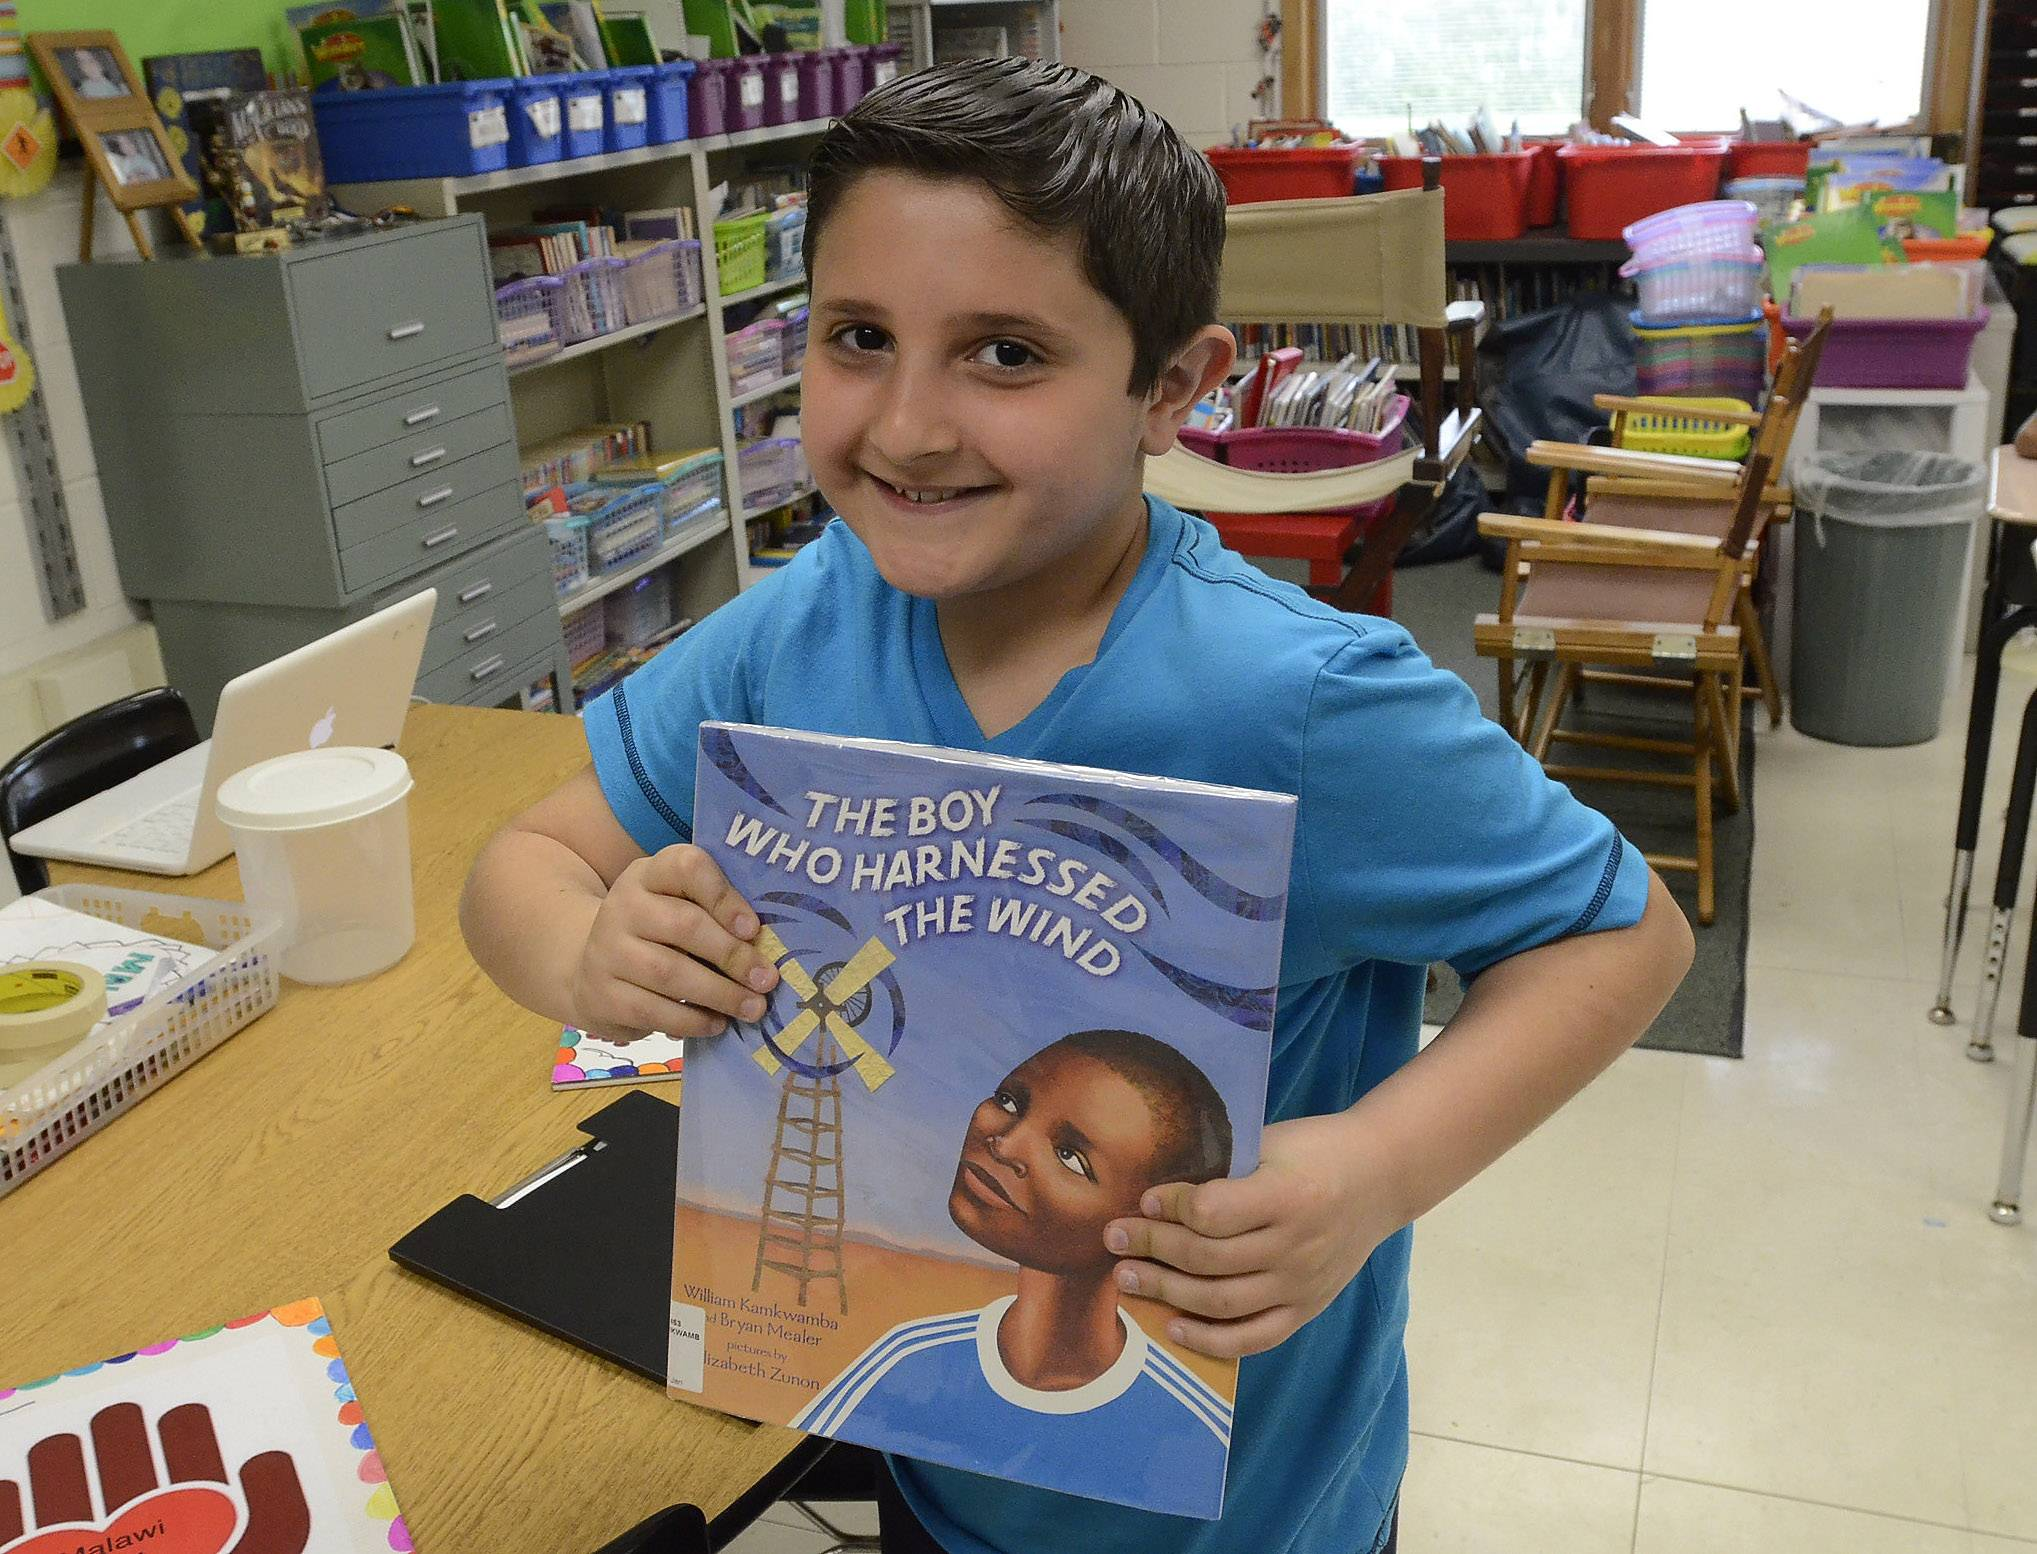 Angelo Bravos holds the book that inspired fourth-graders at Forest View School in Mount Prospect to raise money for the Malawi Heart Fund, which will provide hygiene kits for orphans at the Malawi Children's Mission.